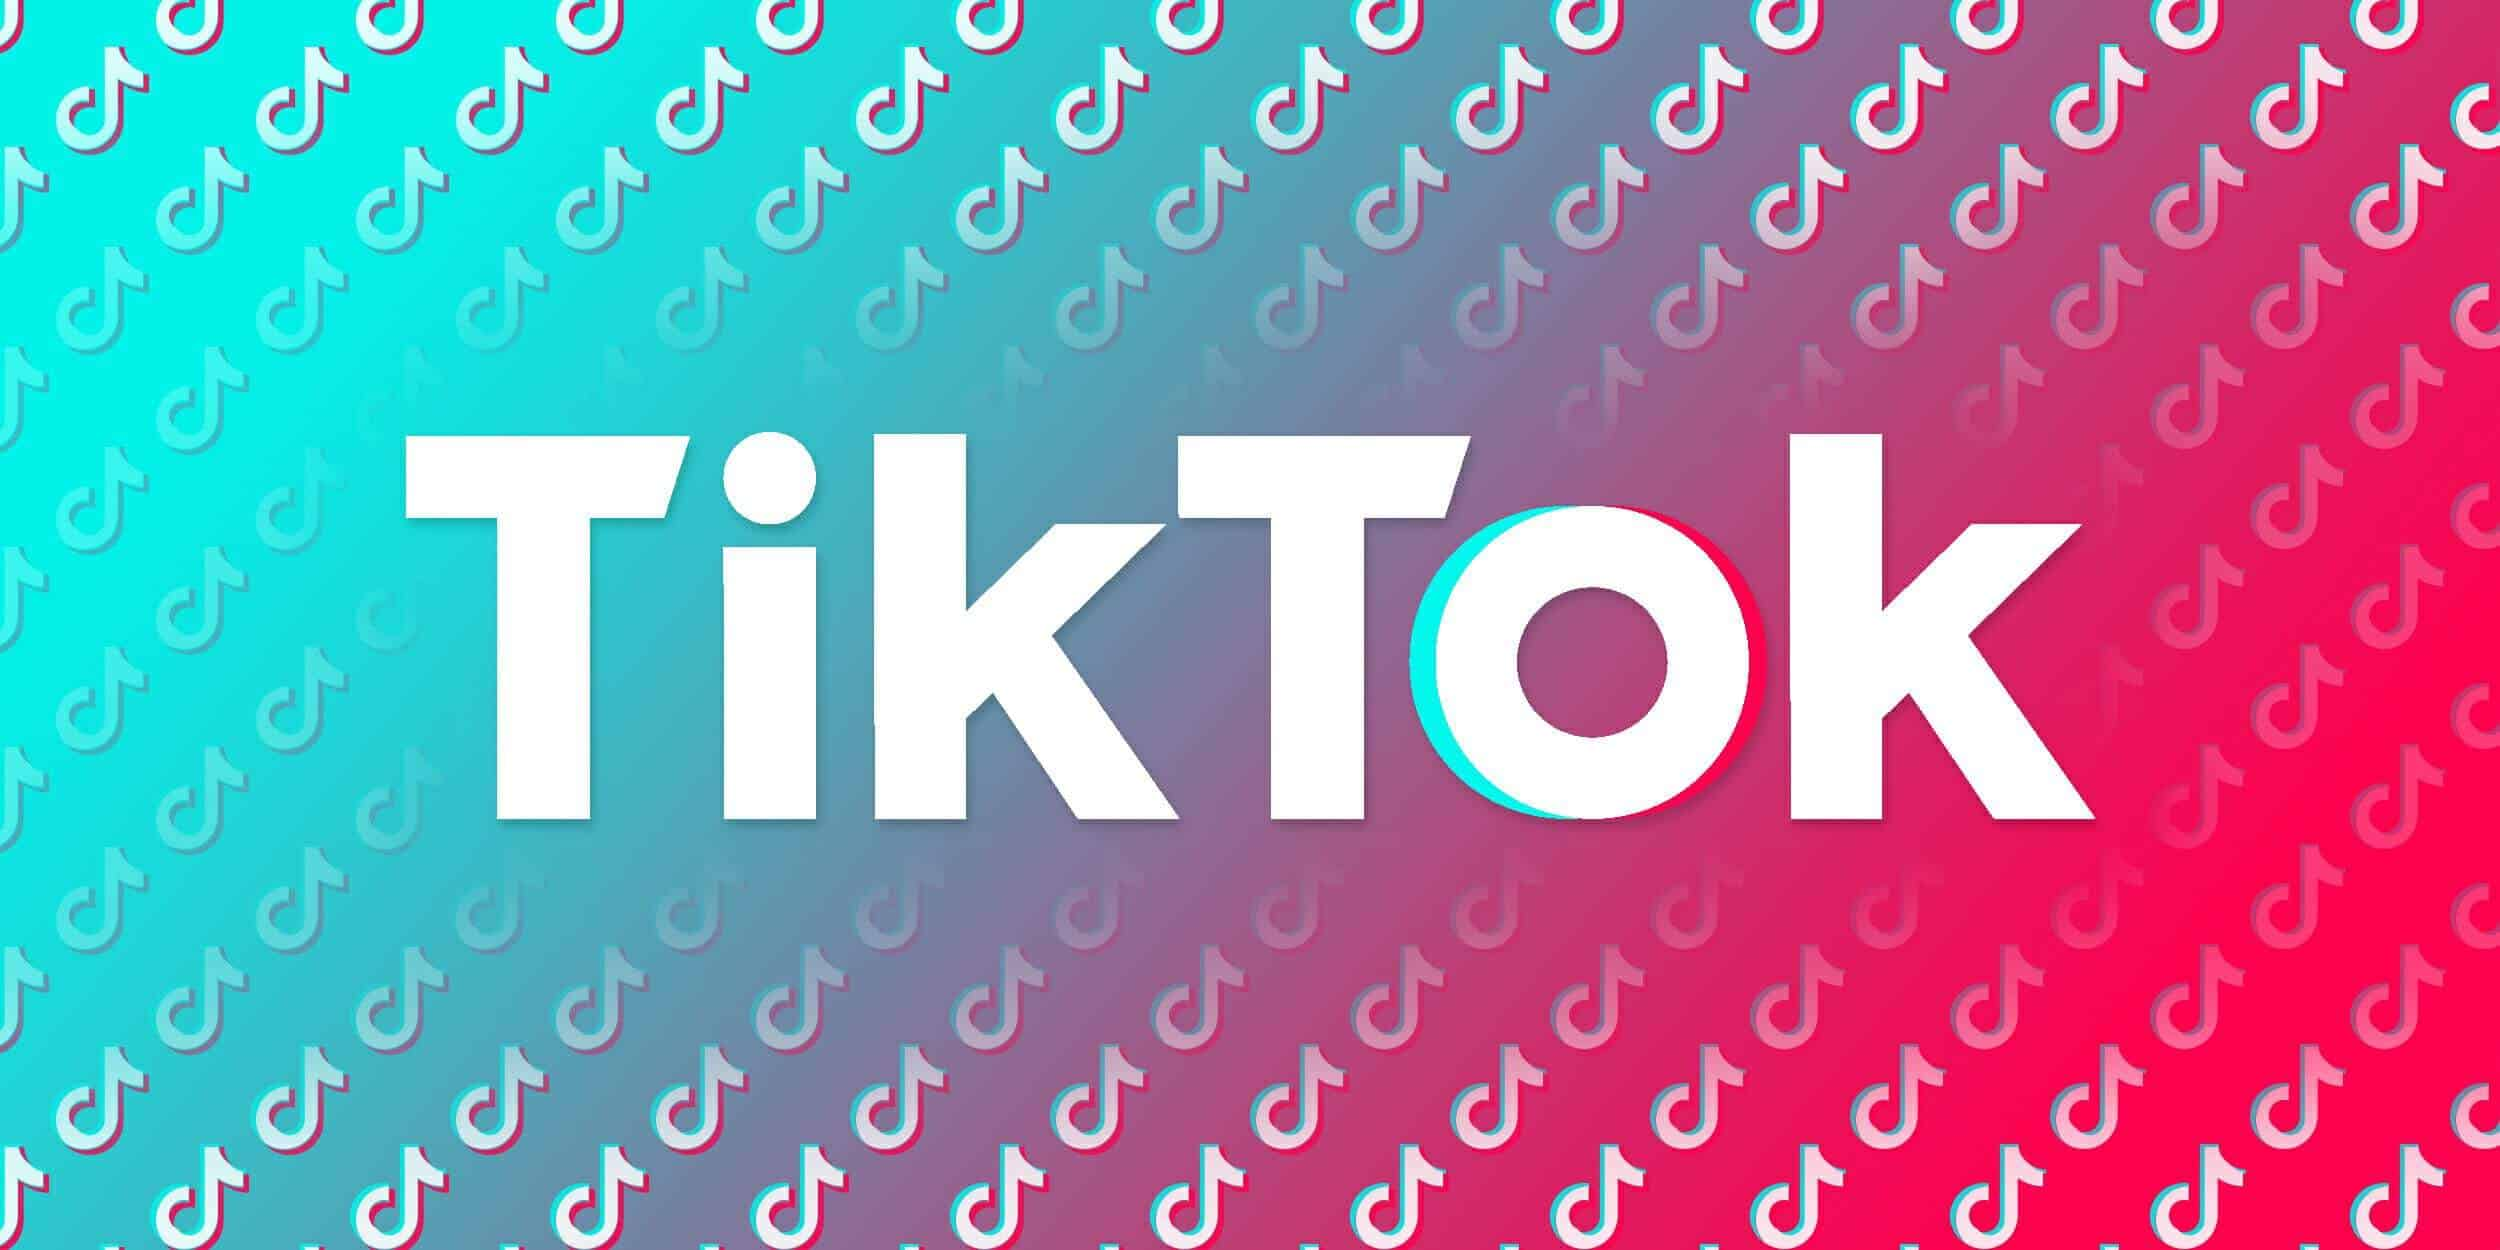 TikTok Users See First Viral Bitcoin Video on the Platform